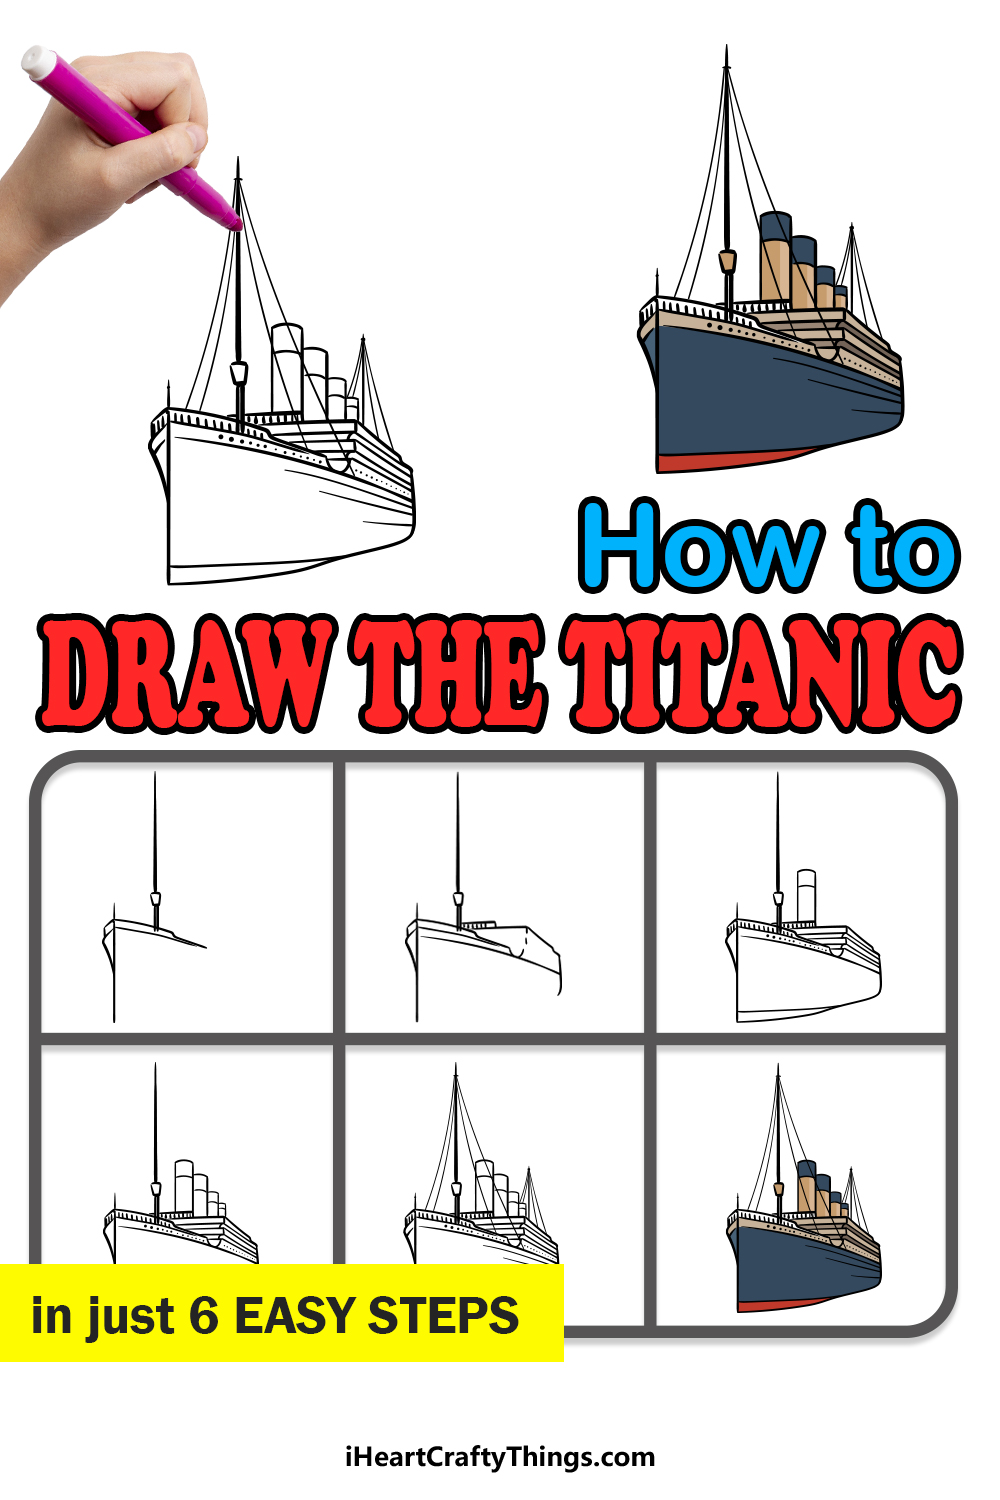 how to draw the titanic in 6 easy steps